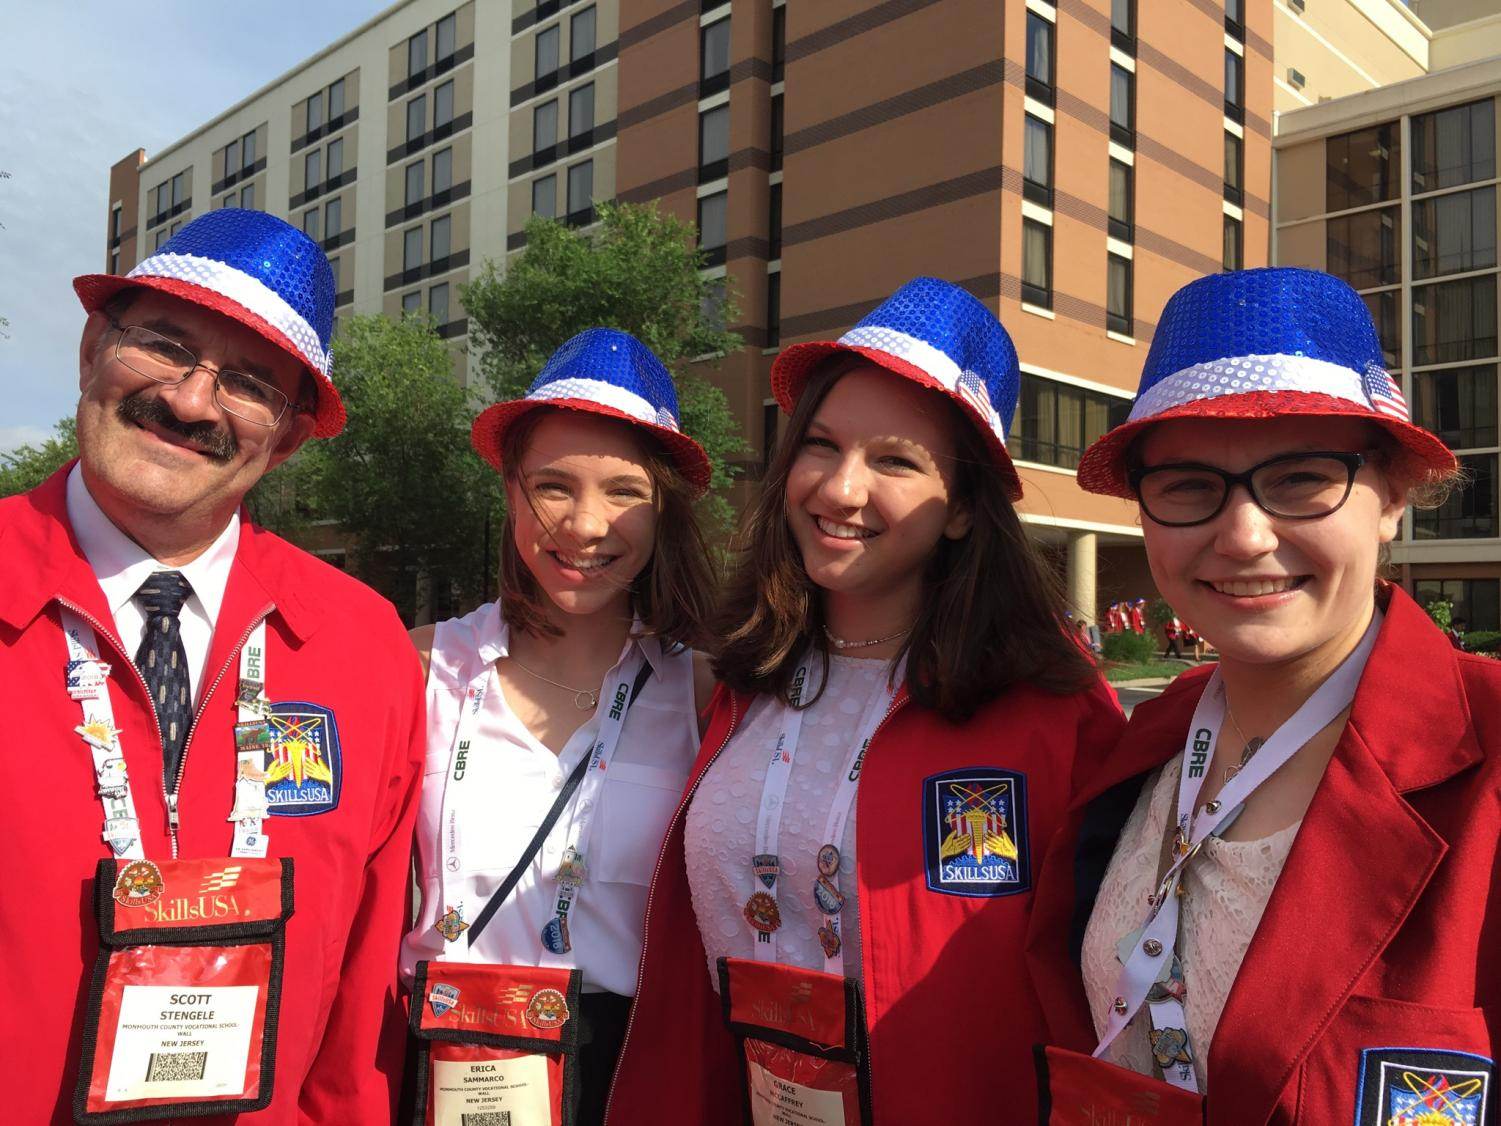 From left, math teacher and SkillsUSA advisor Scott Stengele, rising senior Erica Sammarco of Colts Neck, rising senior Grace McCaffrey of Middletown, and recent graduate Karoline Winzer of Matawan attend SkillsUSA Nationals in Louisville, Kentucky.